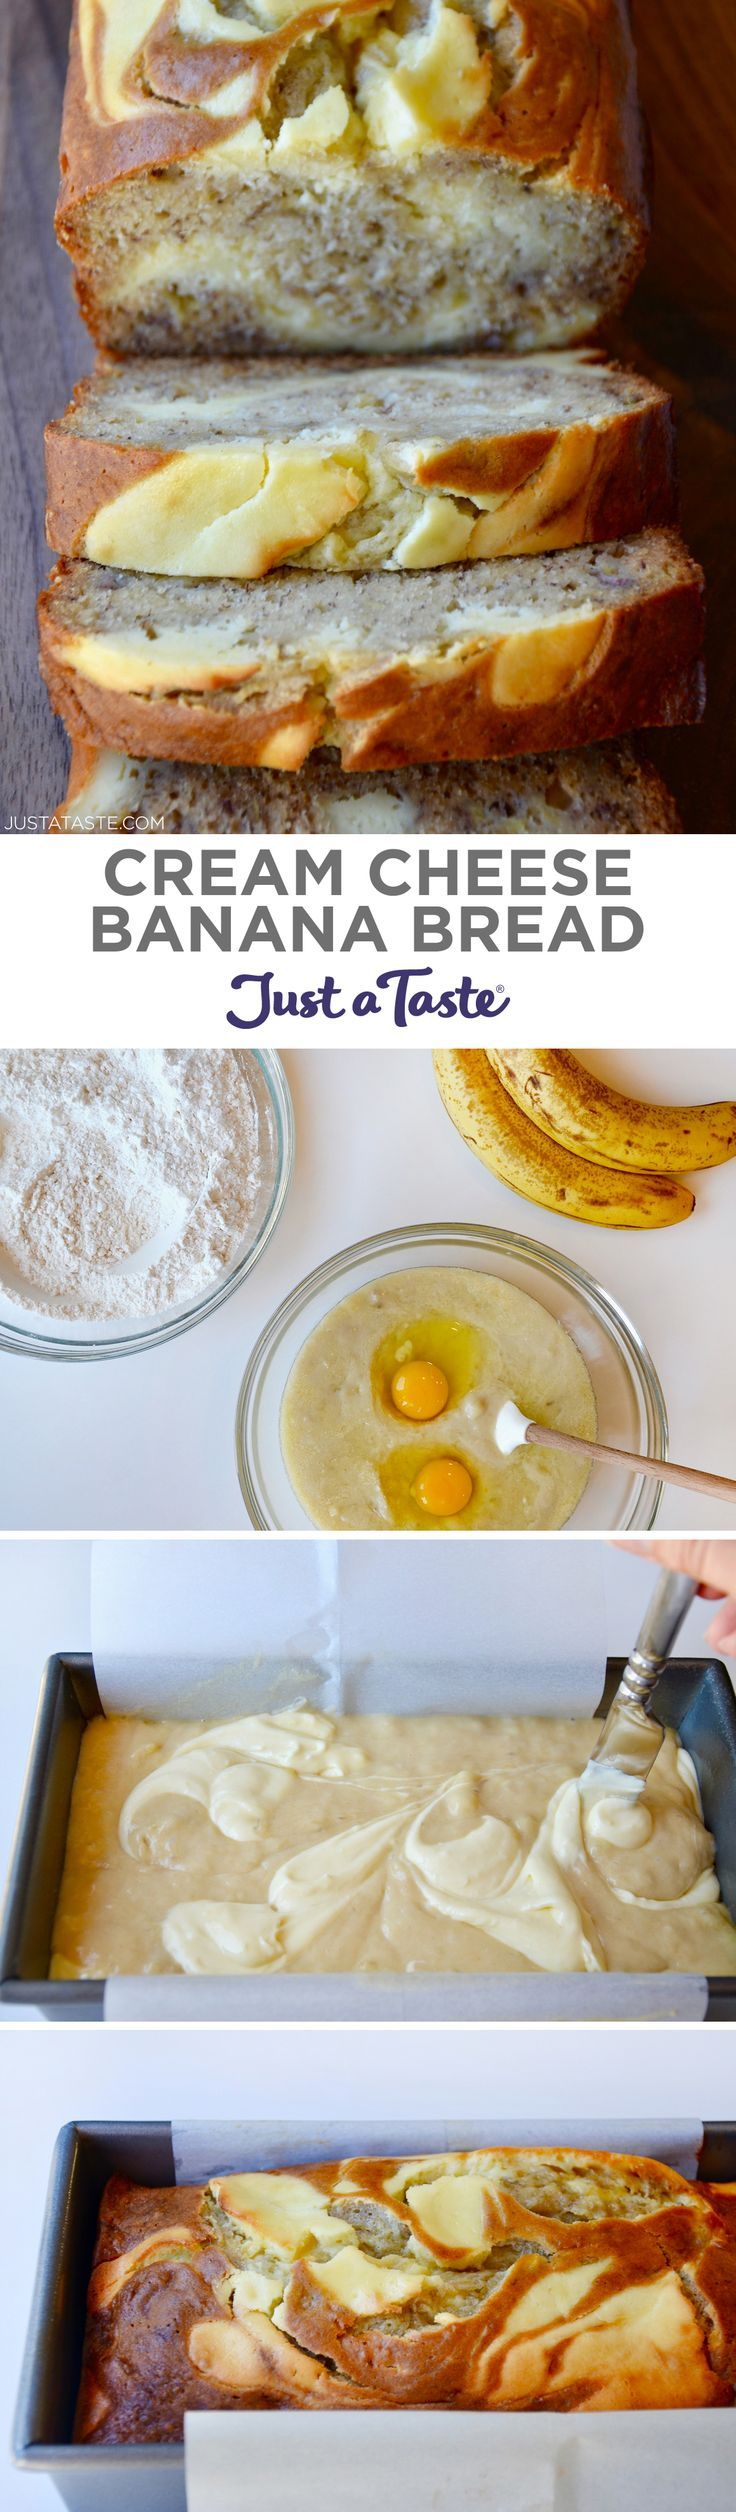 Cream Cheese Banana Bread recipe from justataste.com #recipe #banana